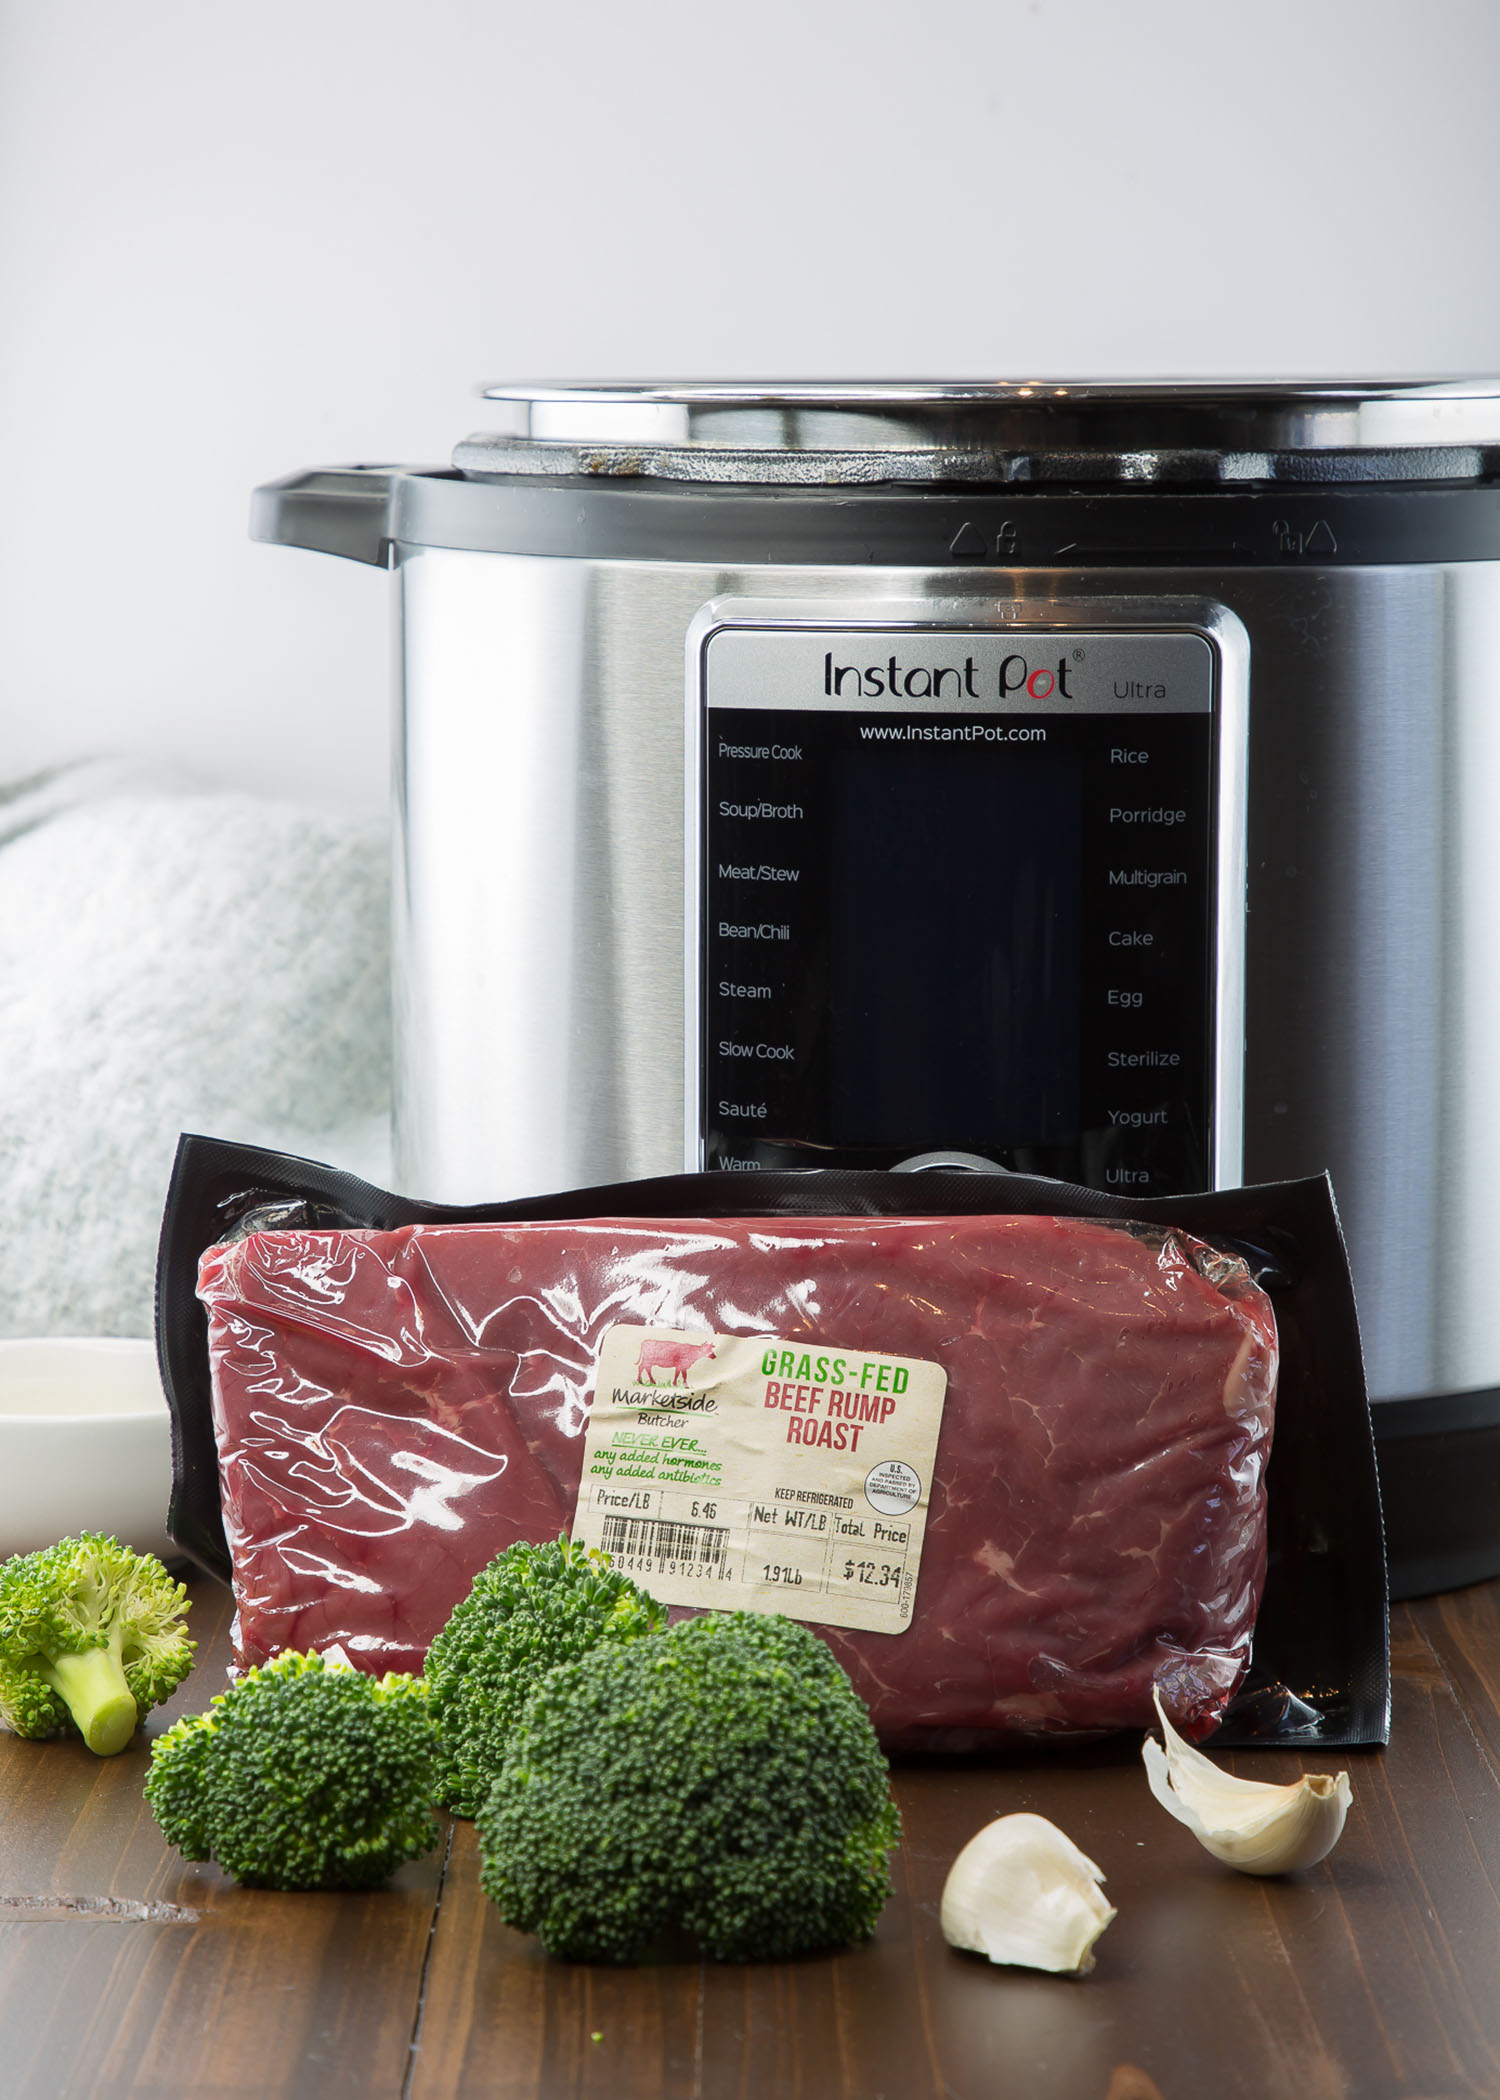 beef and broccoli bowl ingredients and instant pot